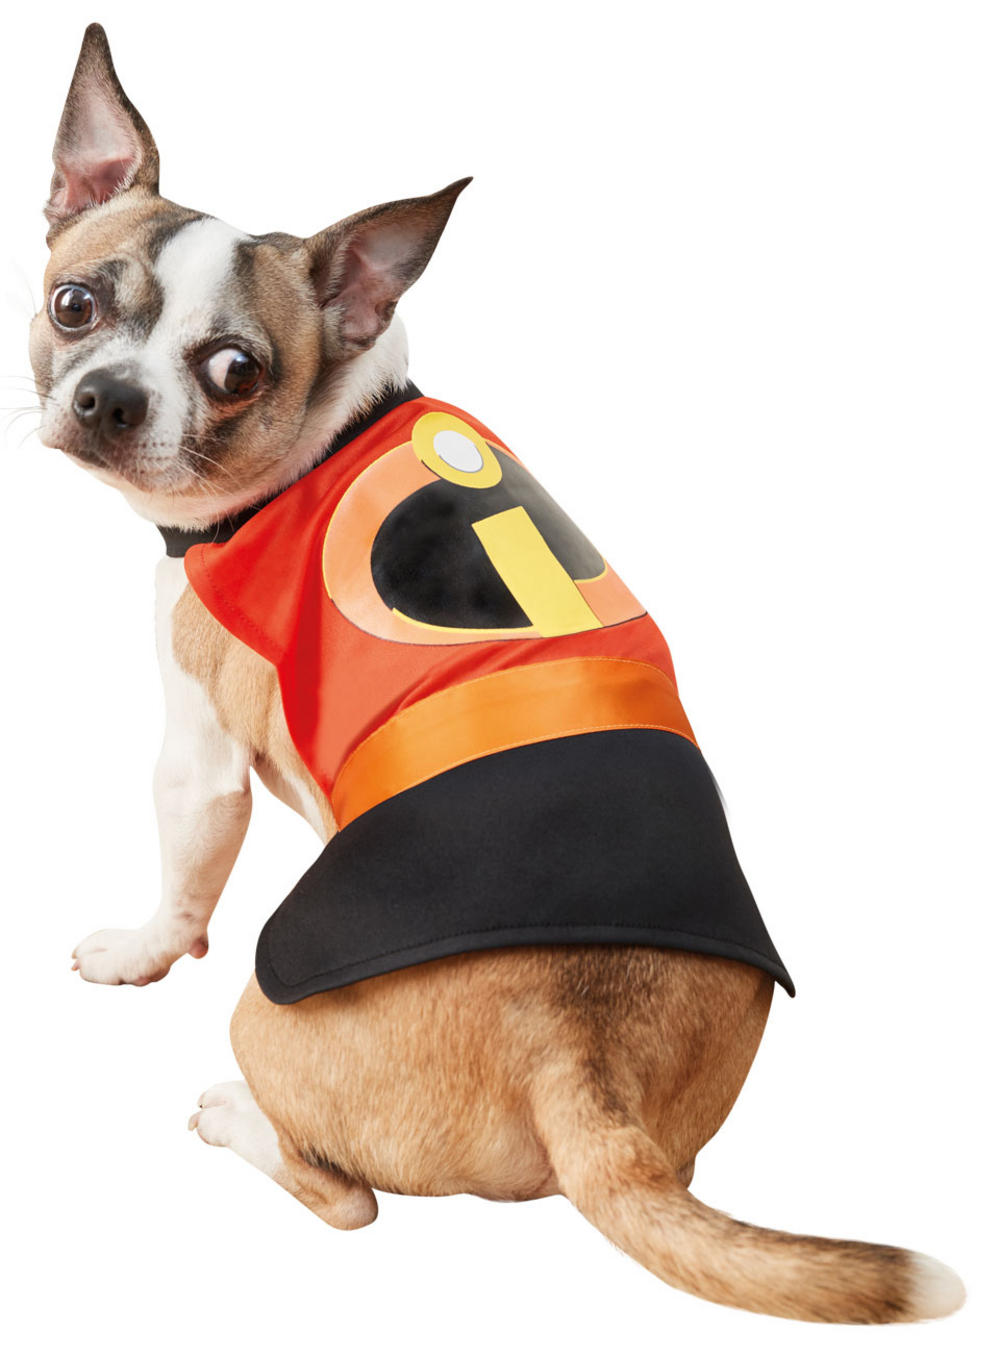 The Incredibles Pet Dog Costume